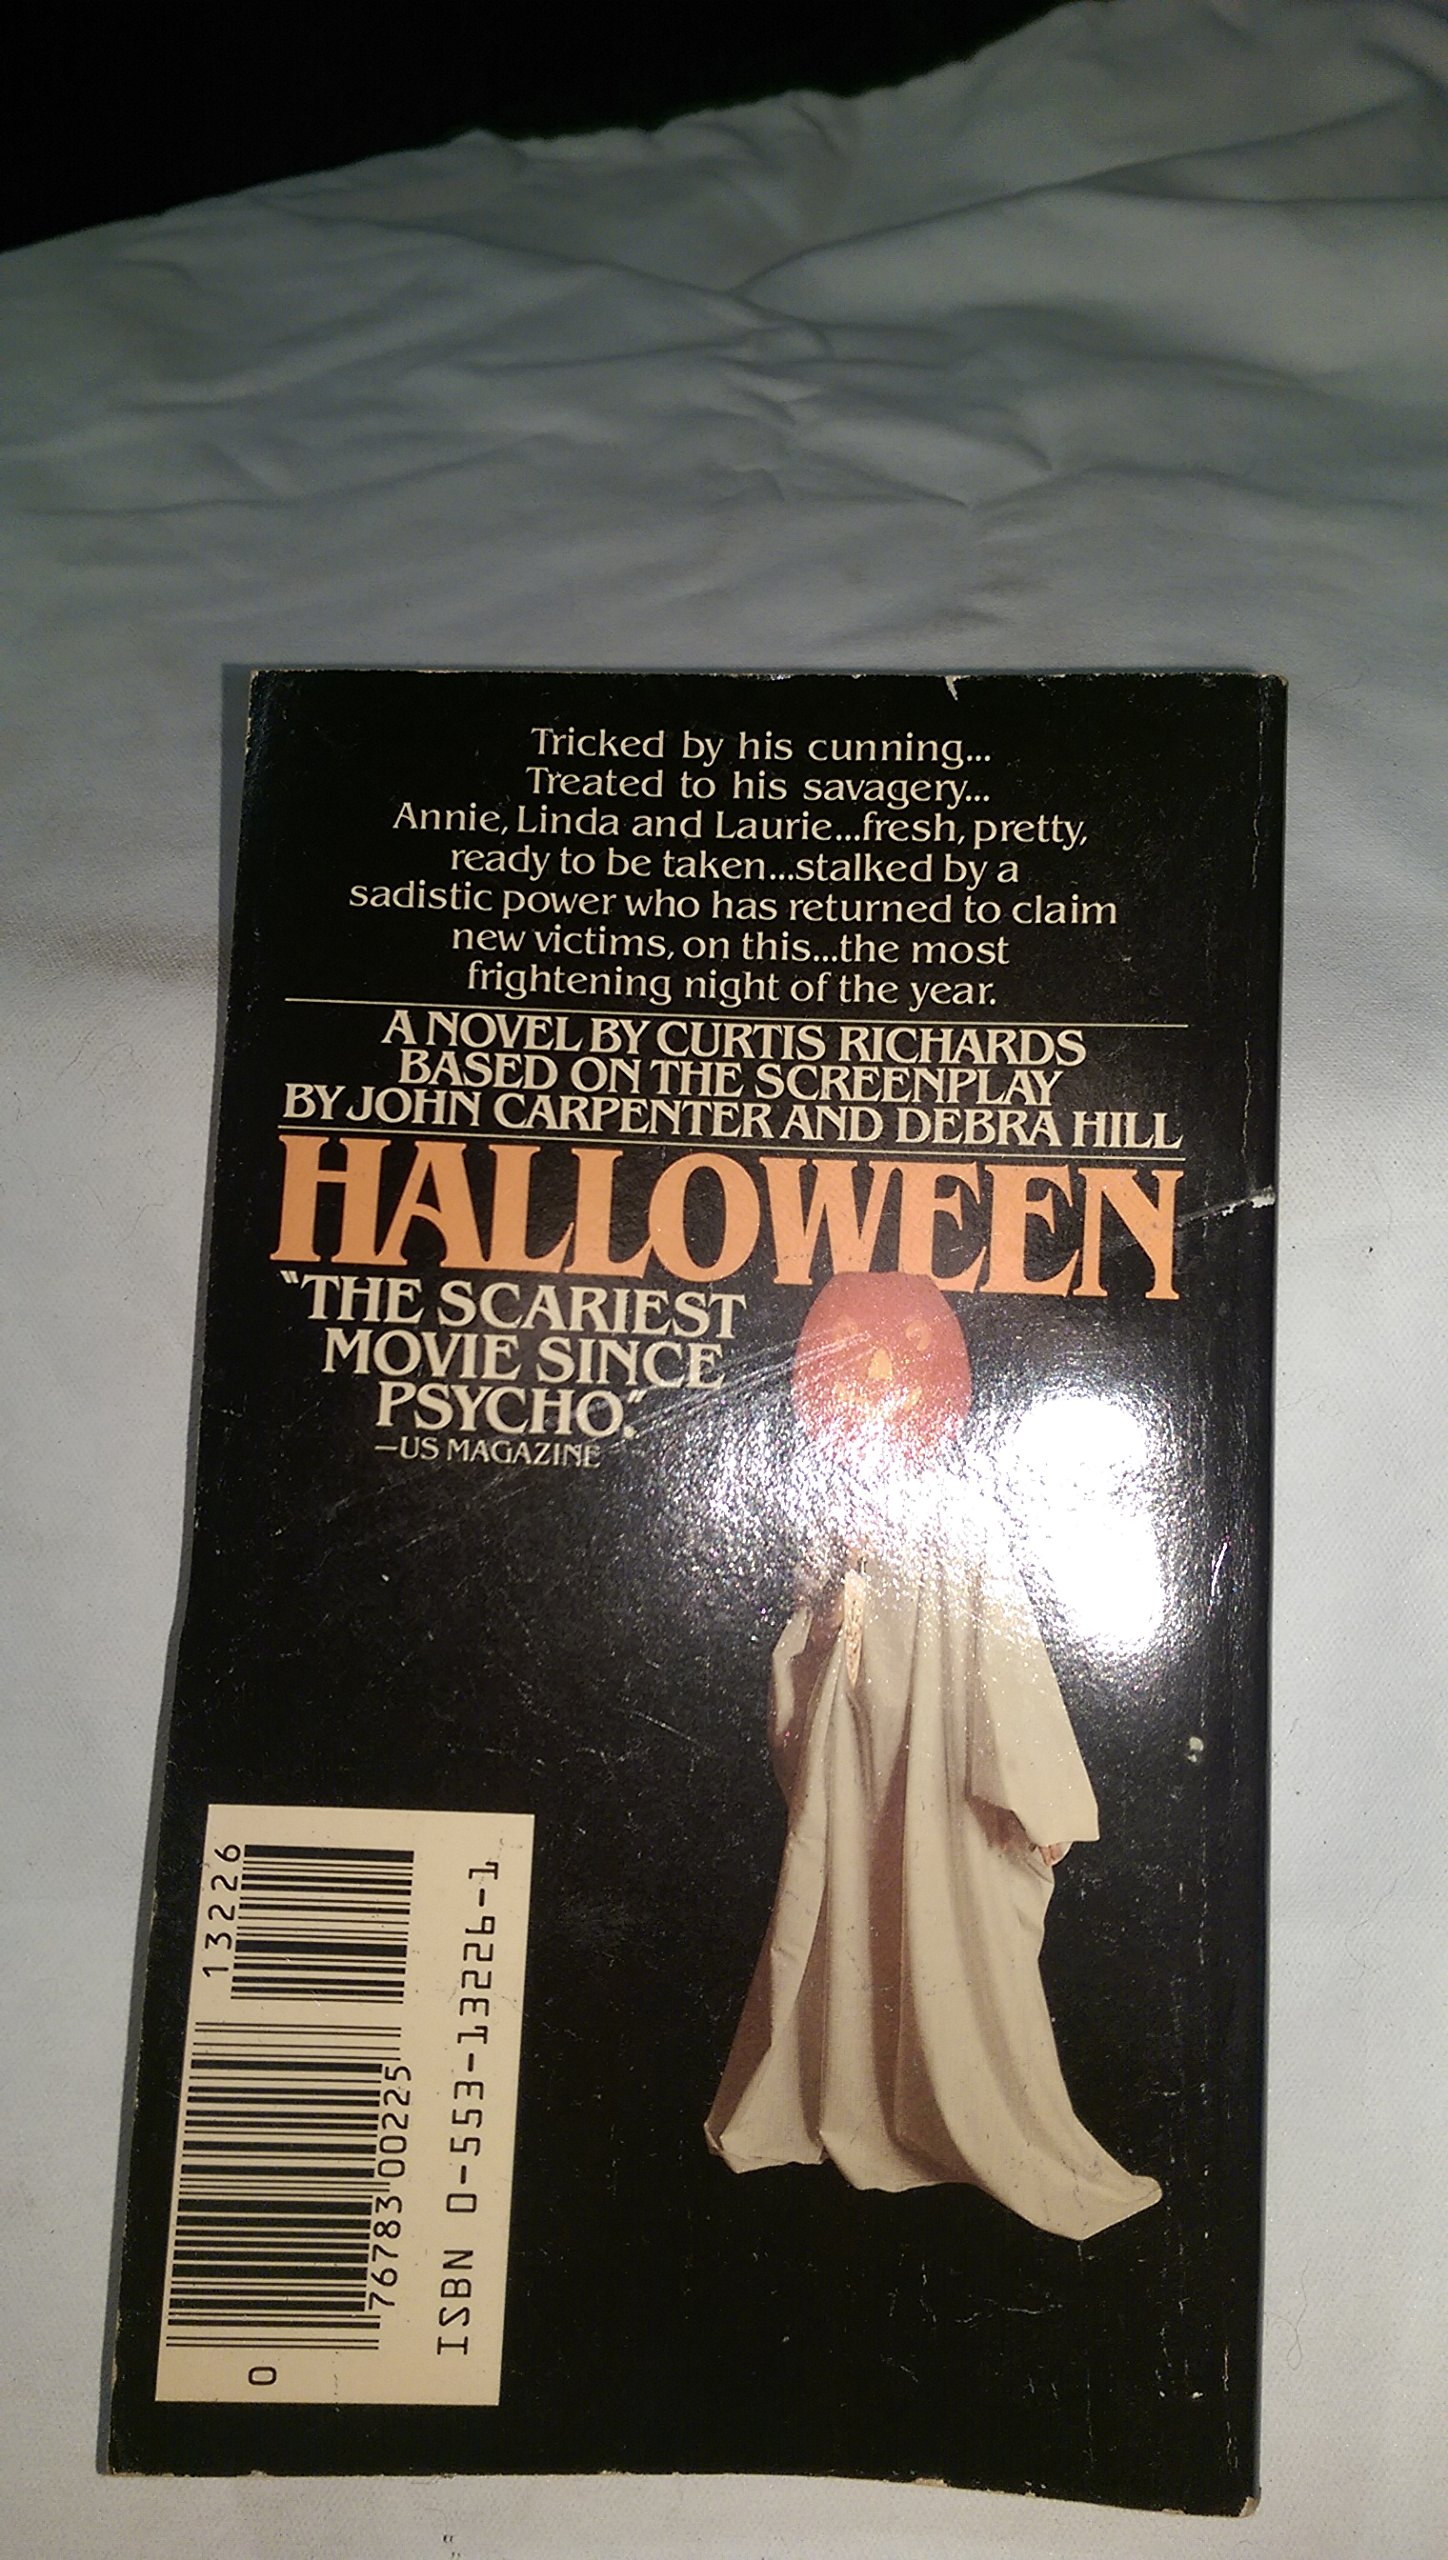 By curtis richards halloween 5th printing paperback amazon com books